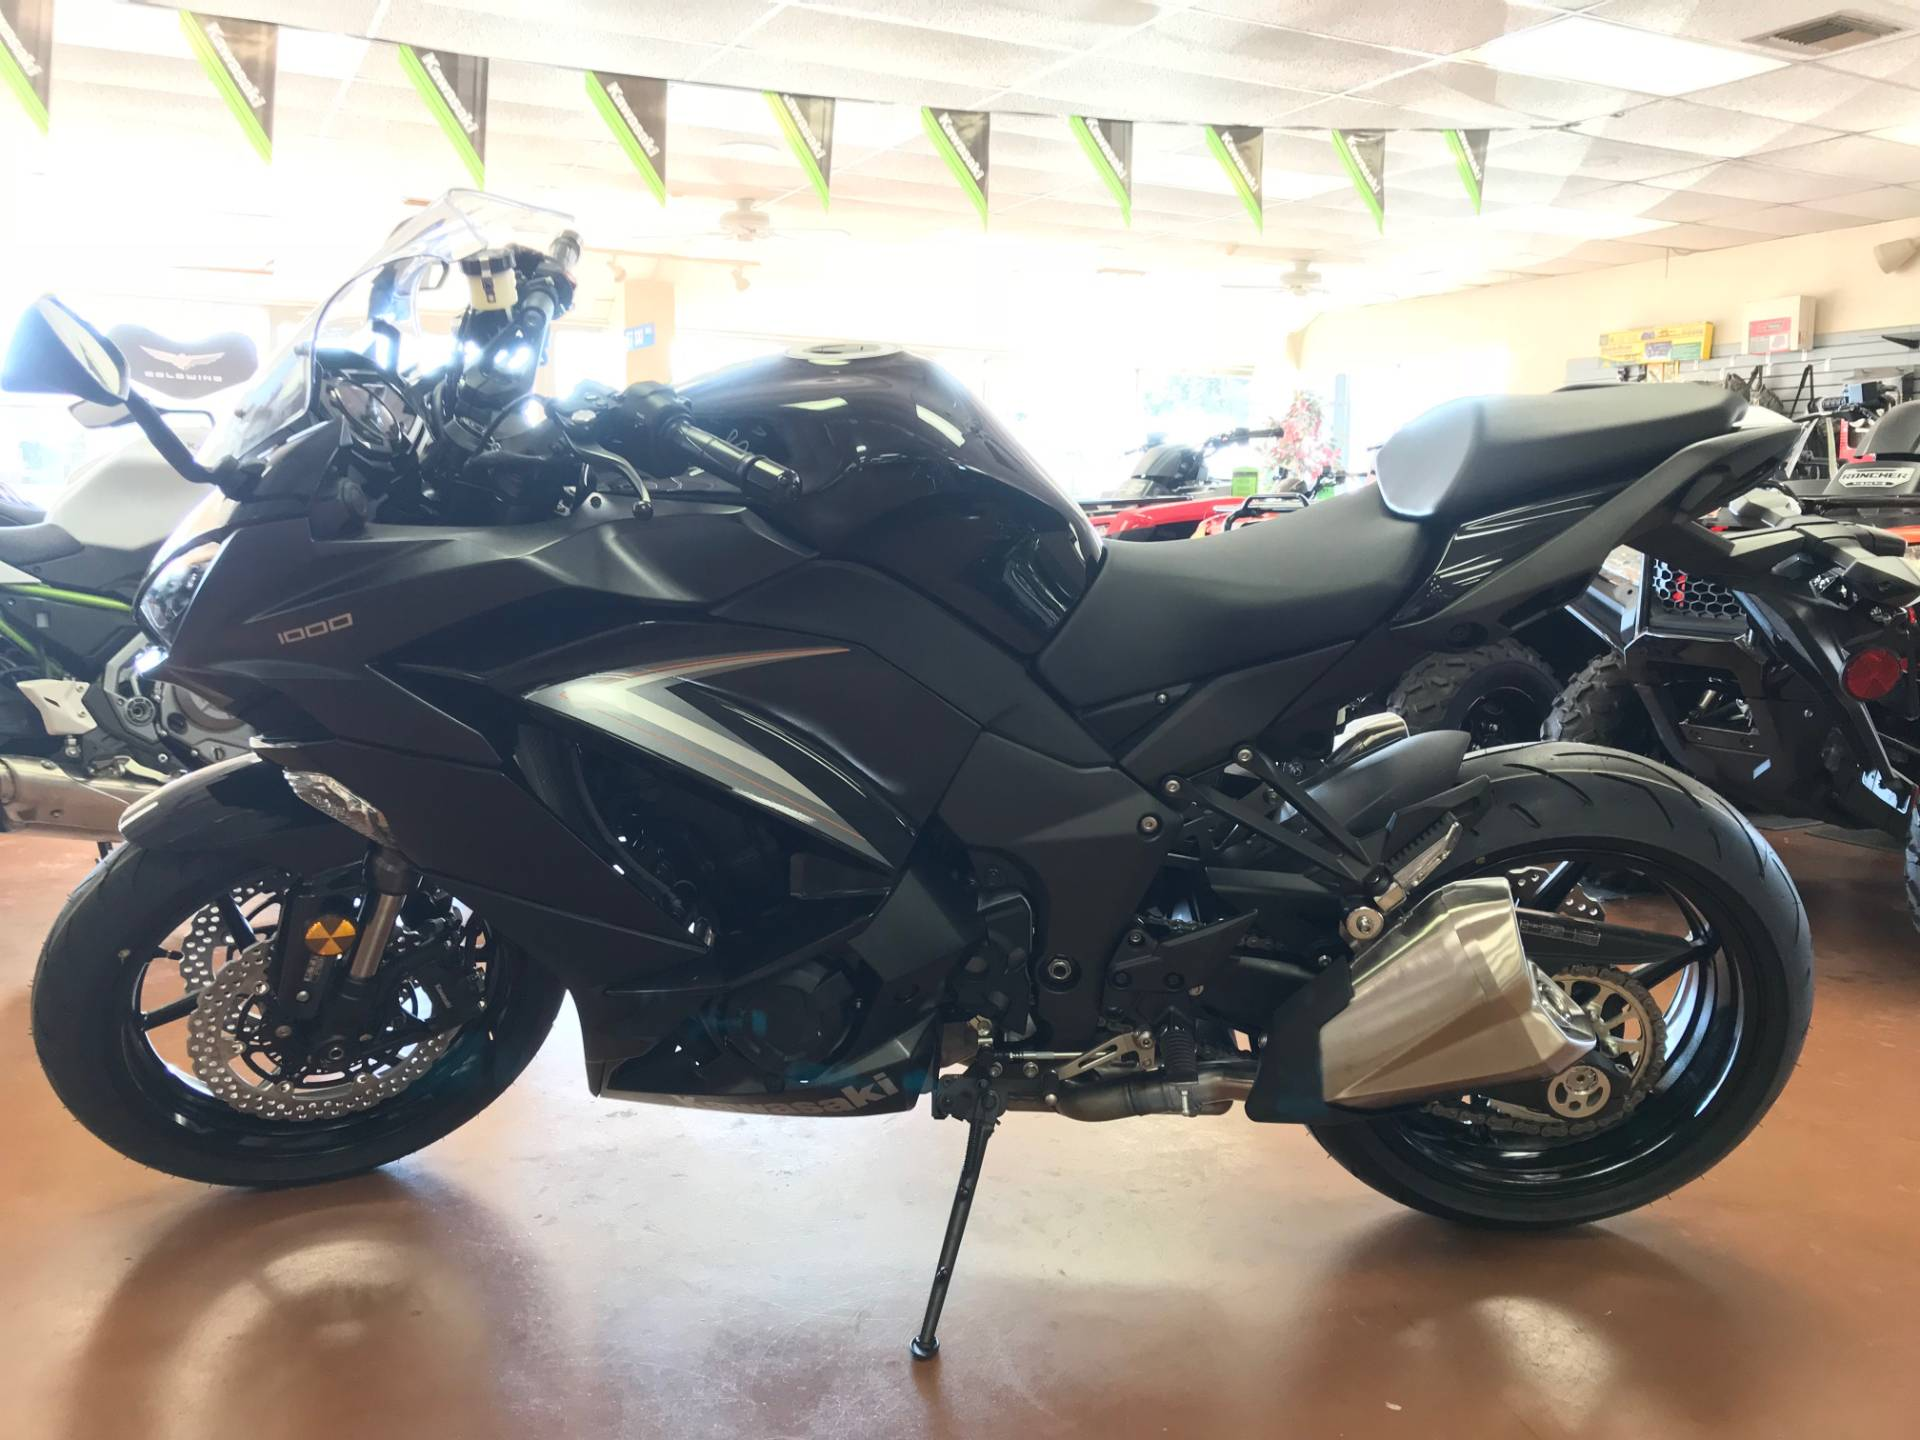 2019 Kawasaki NINJA 1000 ABS in Arlington, Texas - Photo 3